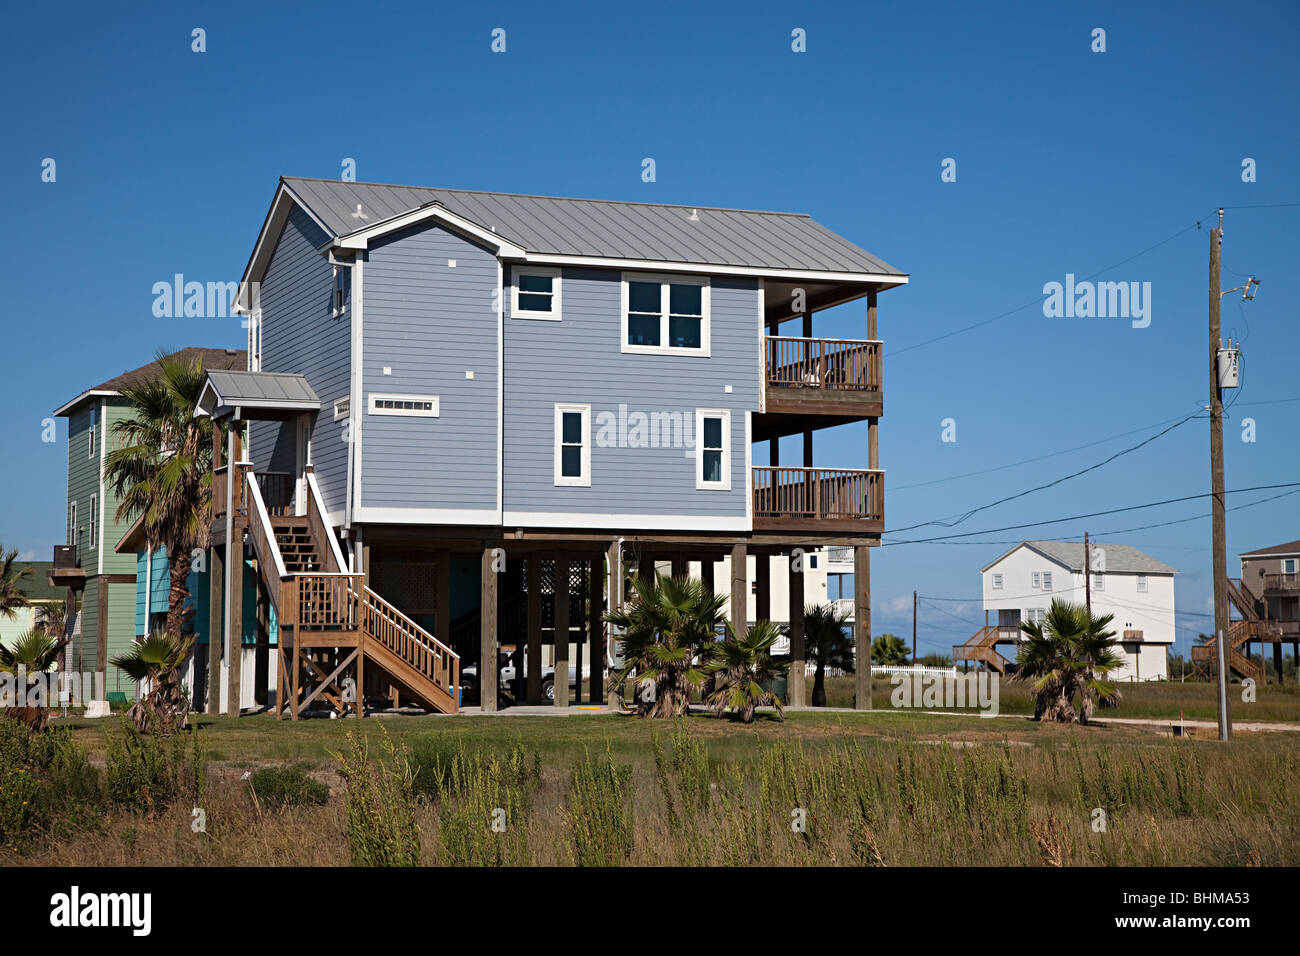 Wooden house on stilts on beach front galveston texas usa for Beach house on stilts